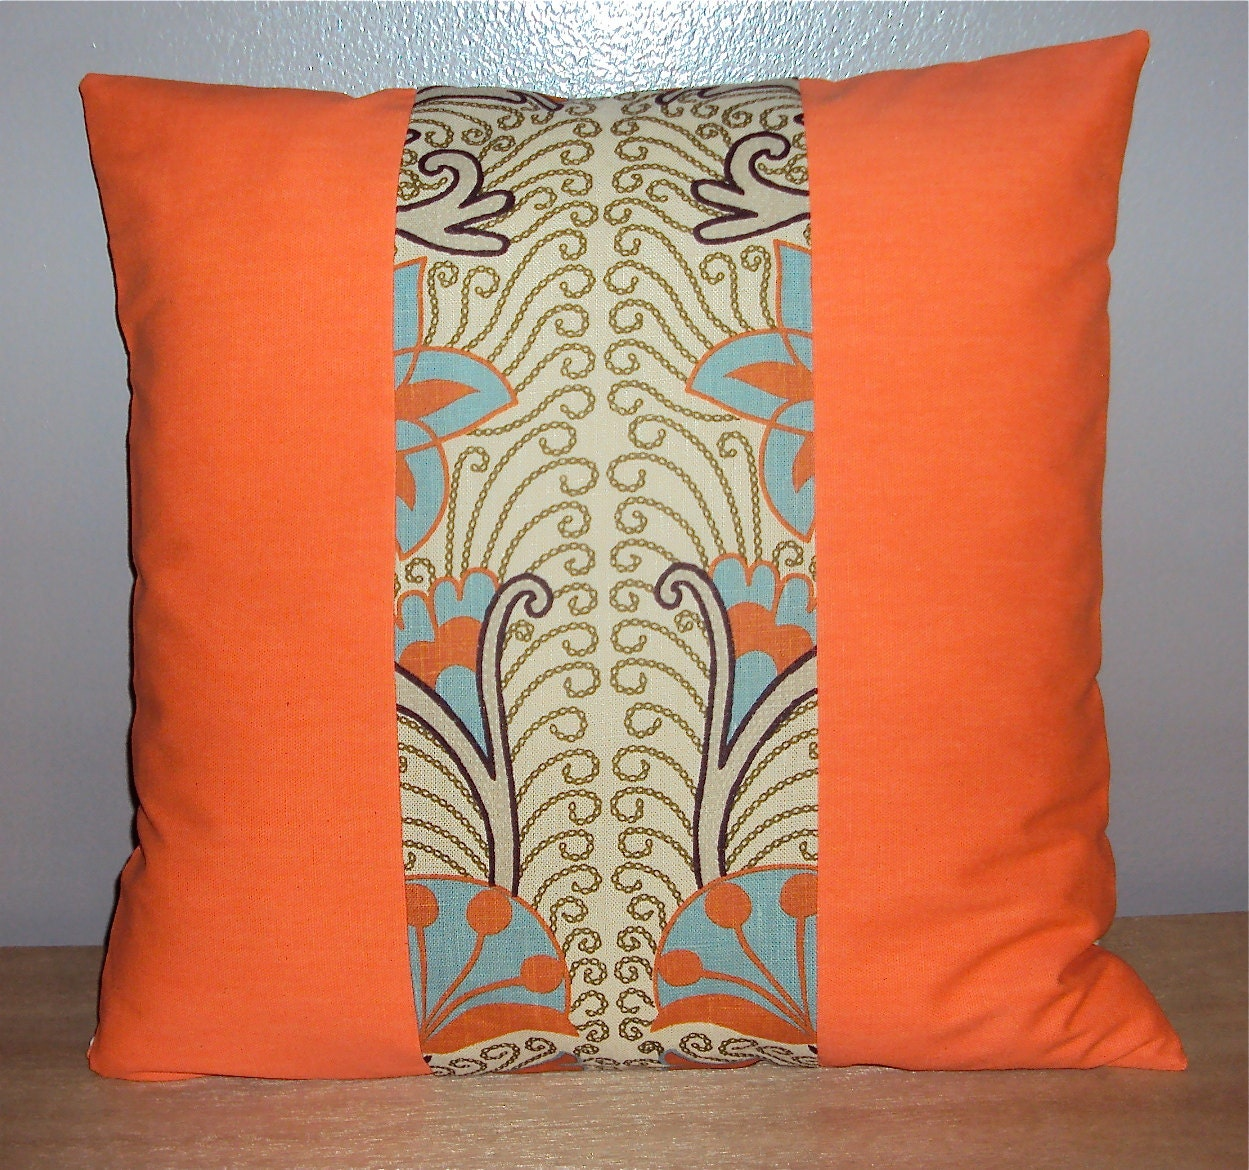 Teal And Orange Decorative Pillows : 16x16 Orange Teal Decorative Pillow Cover by idari on Etsy